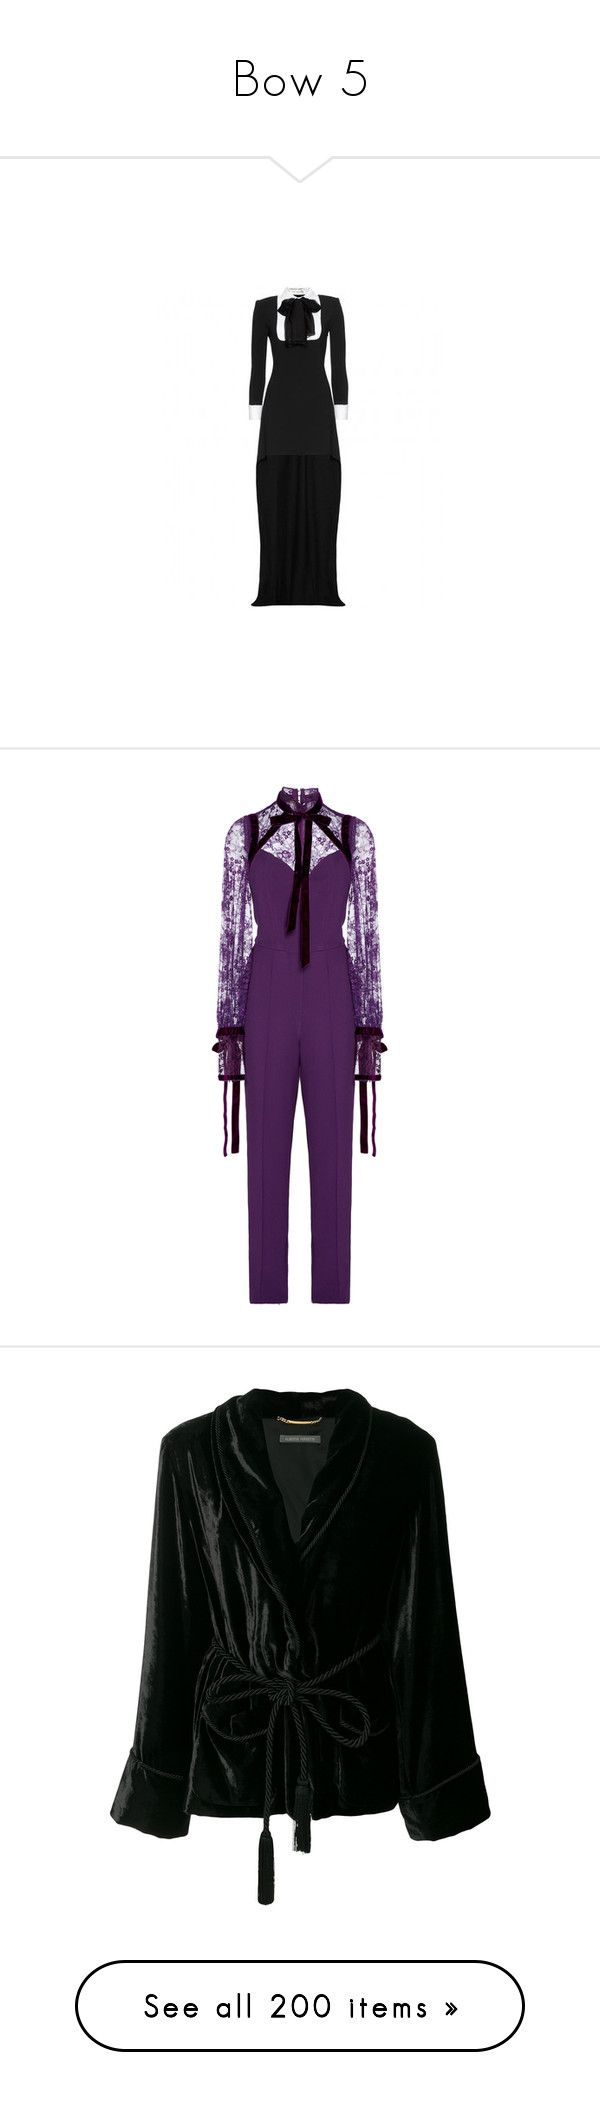 """""""Bow 5"""" by twinkle-twin ❤ liked on Polyvore featuring dresses, gowns, jumpsuits, elie saab, outfits, purple, purple jumpsuits, jump suit, elie saab jumpsuit and intimates"""